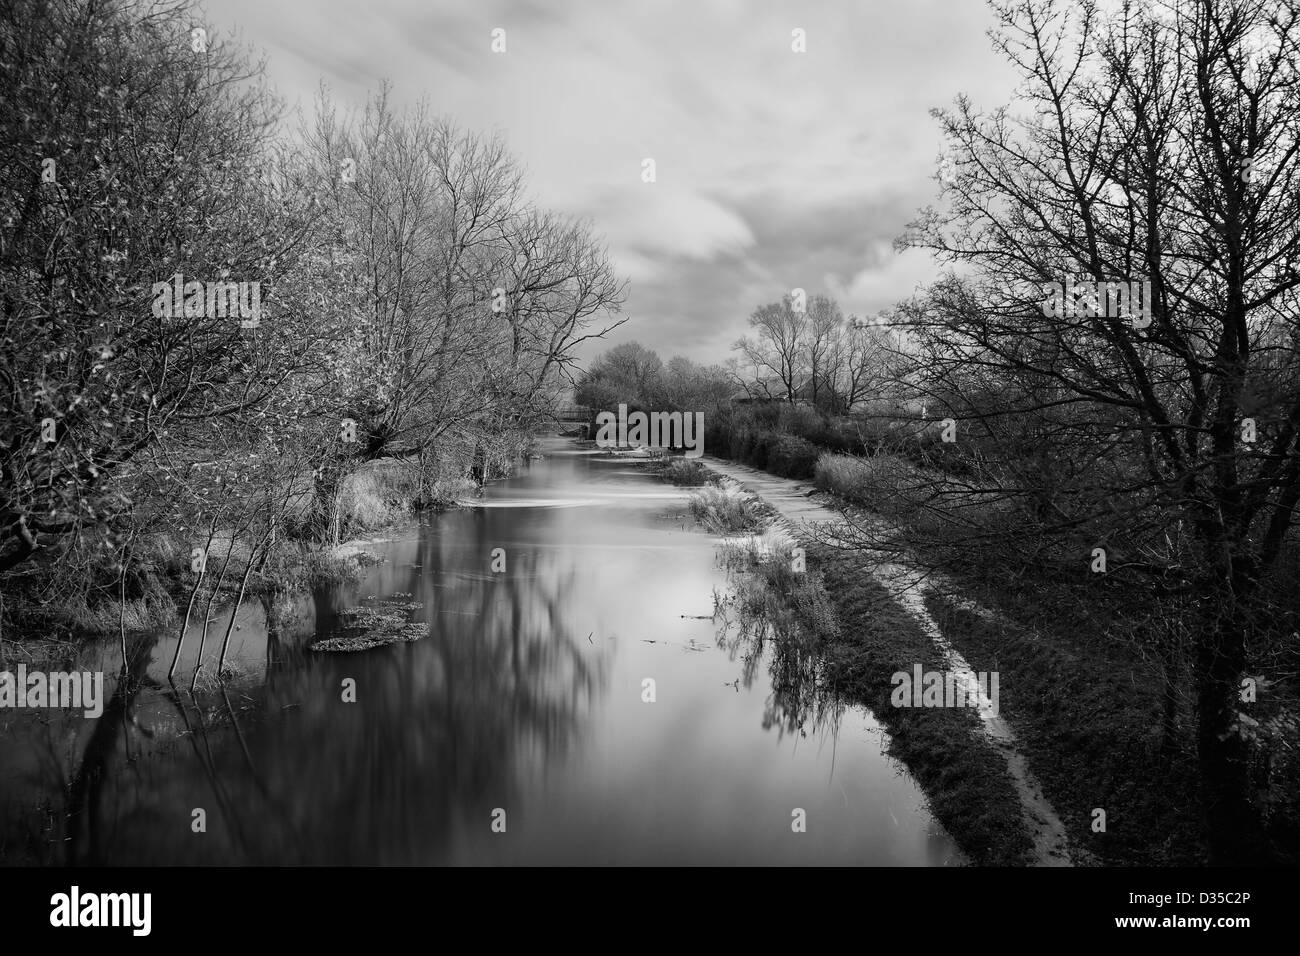 The Flooded Canal near the spine road at South Cerney in Gloucestershire . - Stock Image